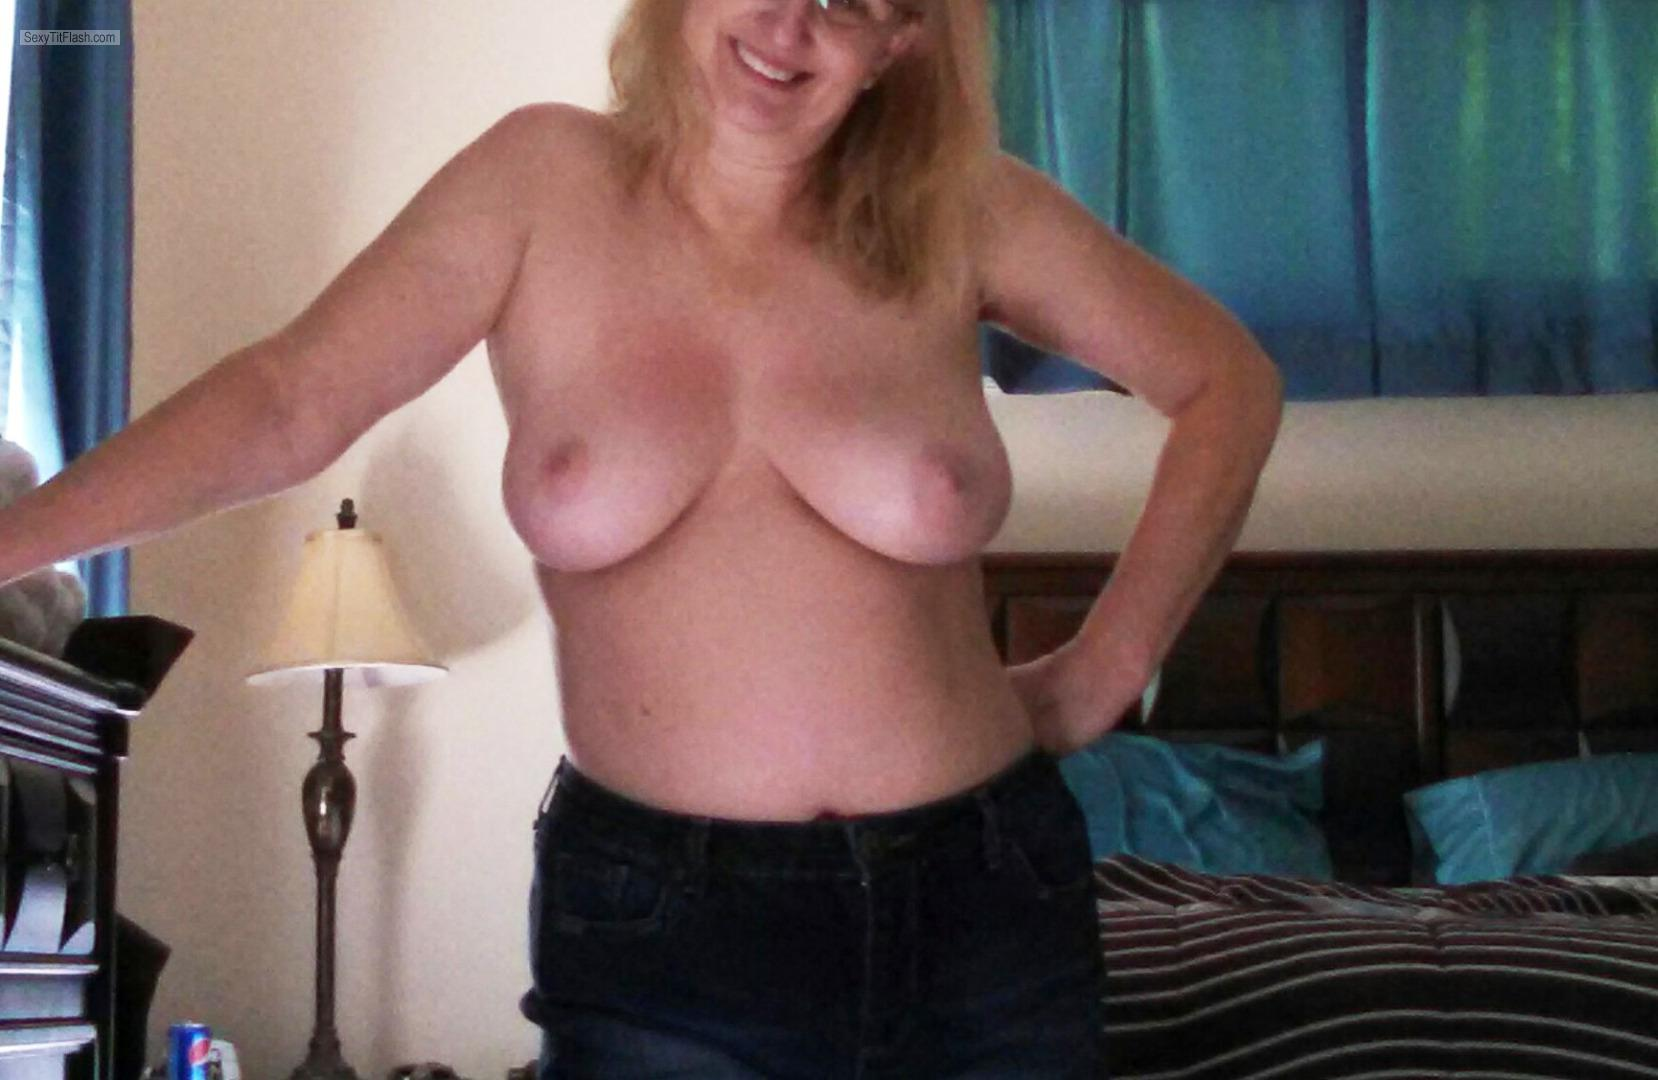 Tit Flash: My Medium Tits - Sexy Sexy Sharon from United States